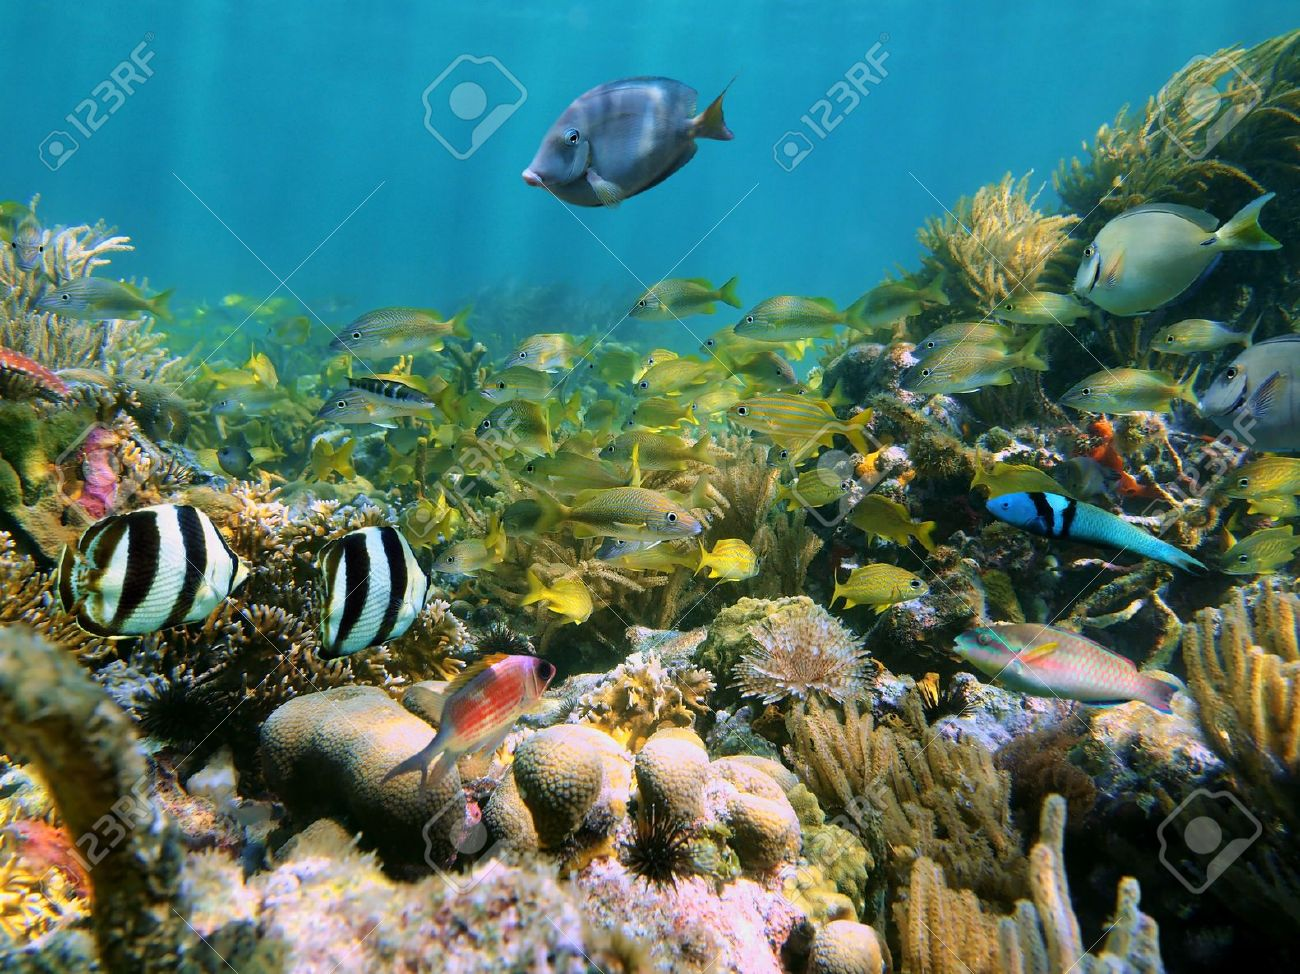 Coral reef with school of colorful tropical fish Stock Photo - 13498570